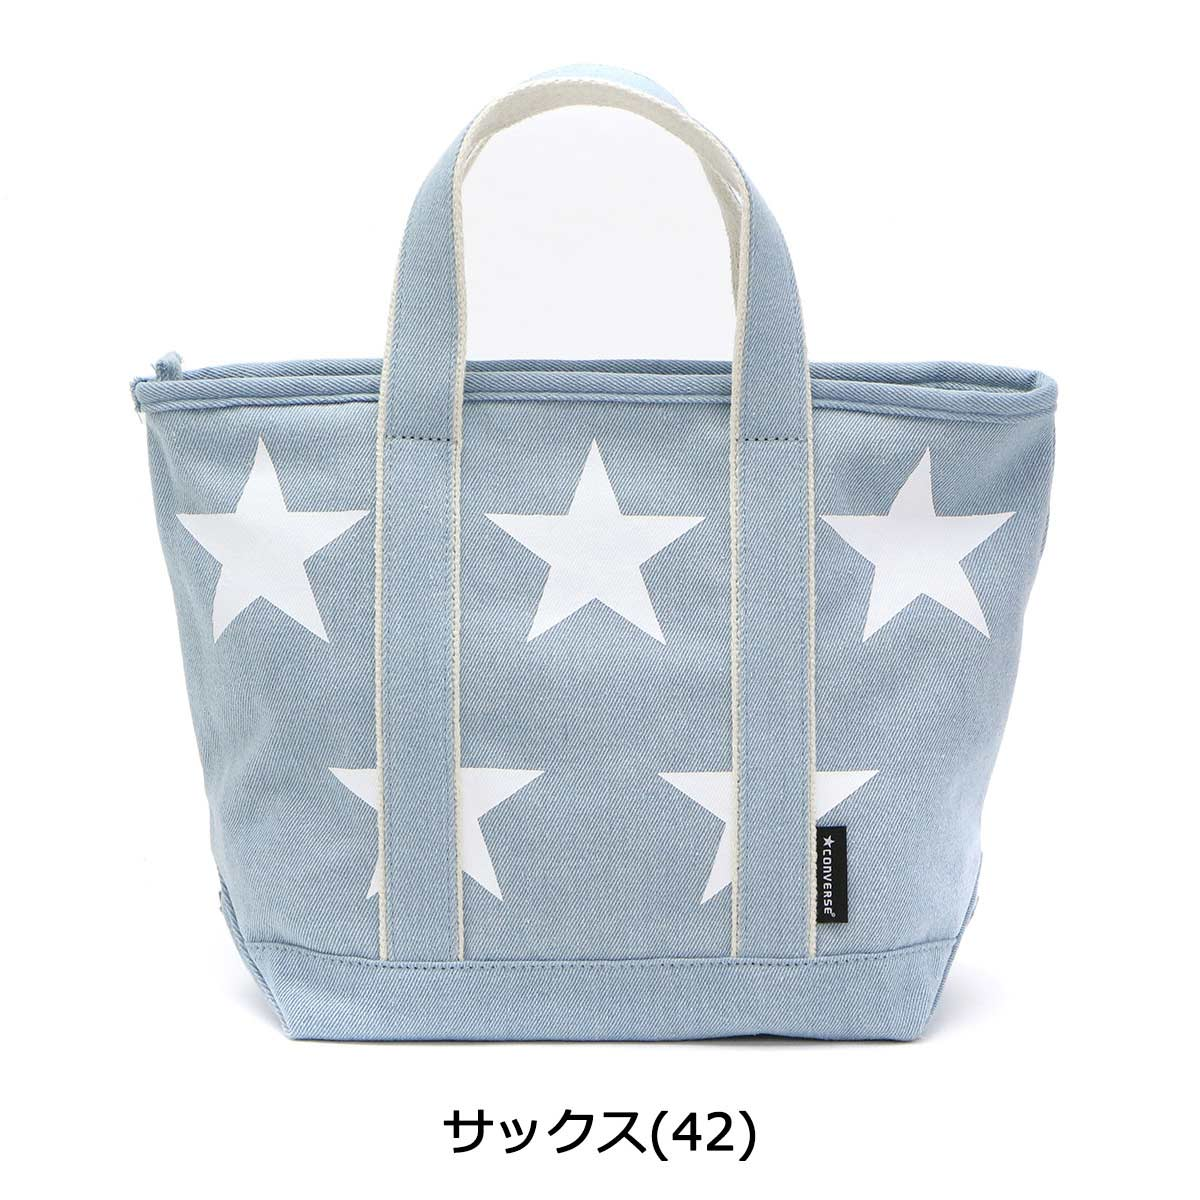 7b42834037f7 Converse Tote Bag CONVERSE S size STAR Print Chemical Tote Bag Star Print  Chemical Tote Bag Ladies Mini Tote Bag 17948700